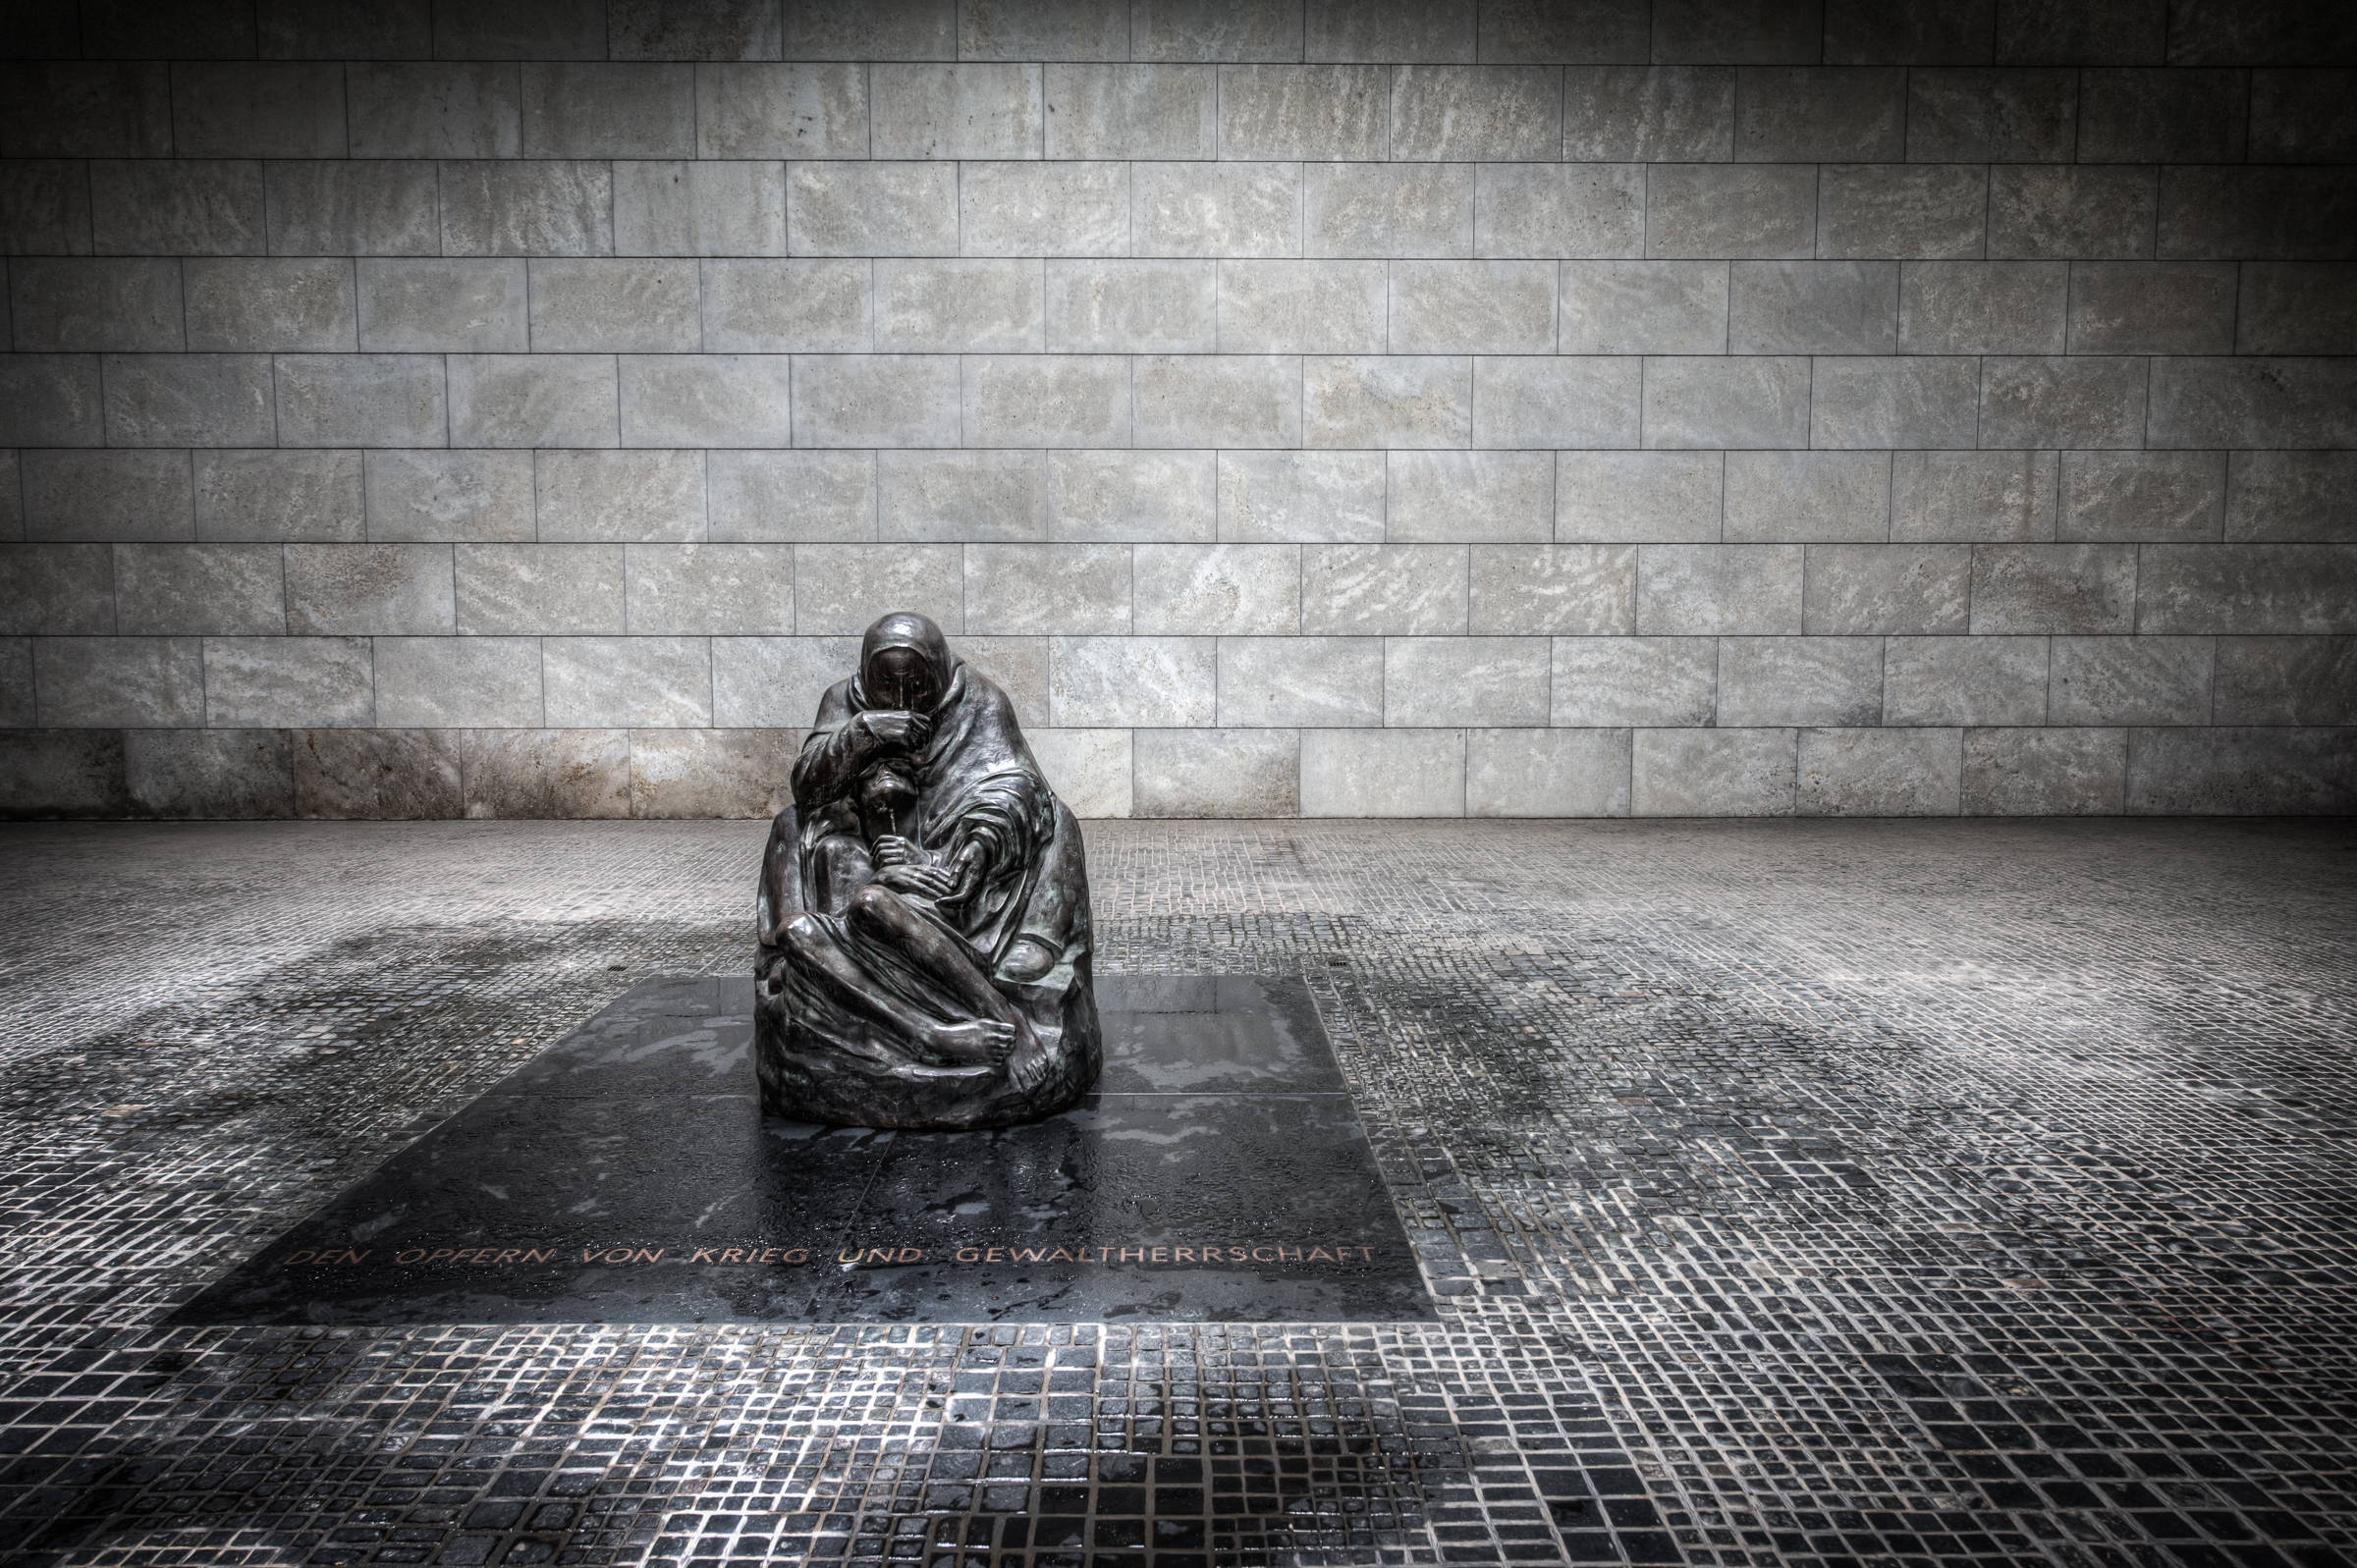 The Neue Wache Pietà